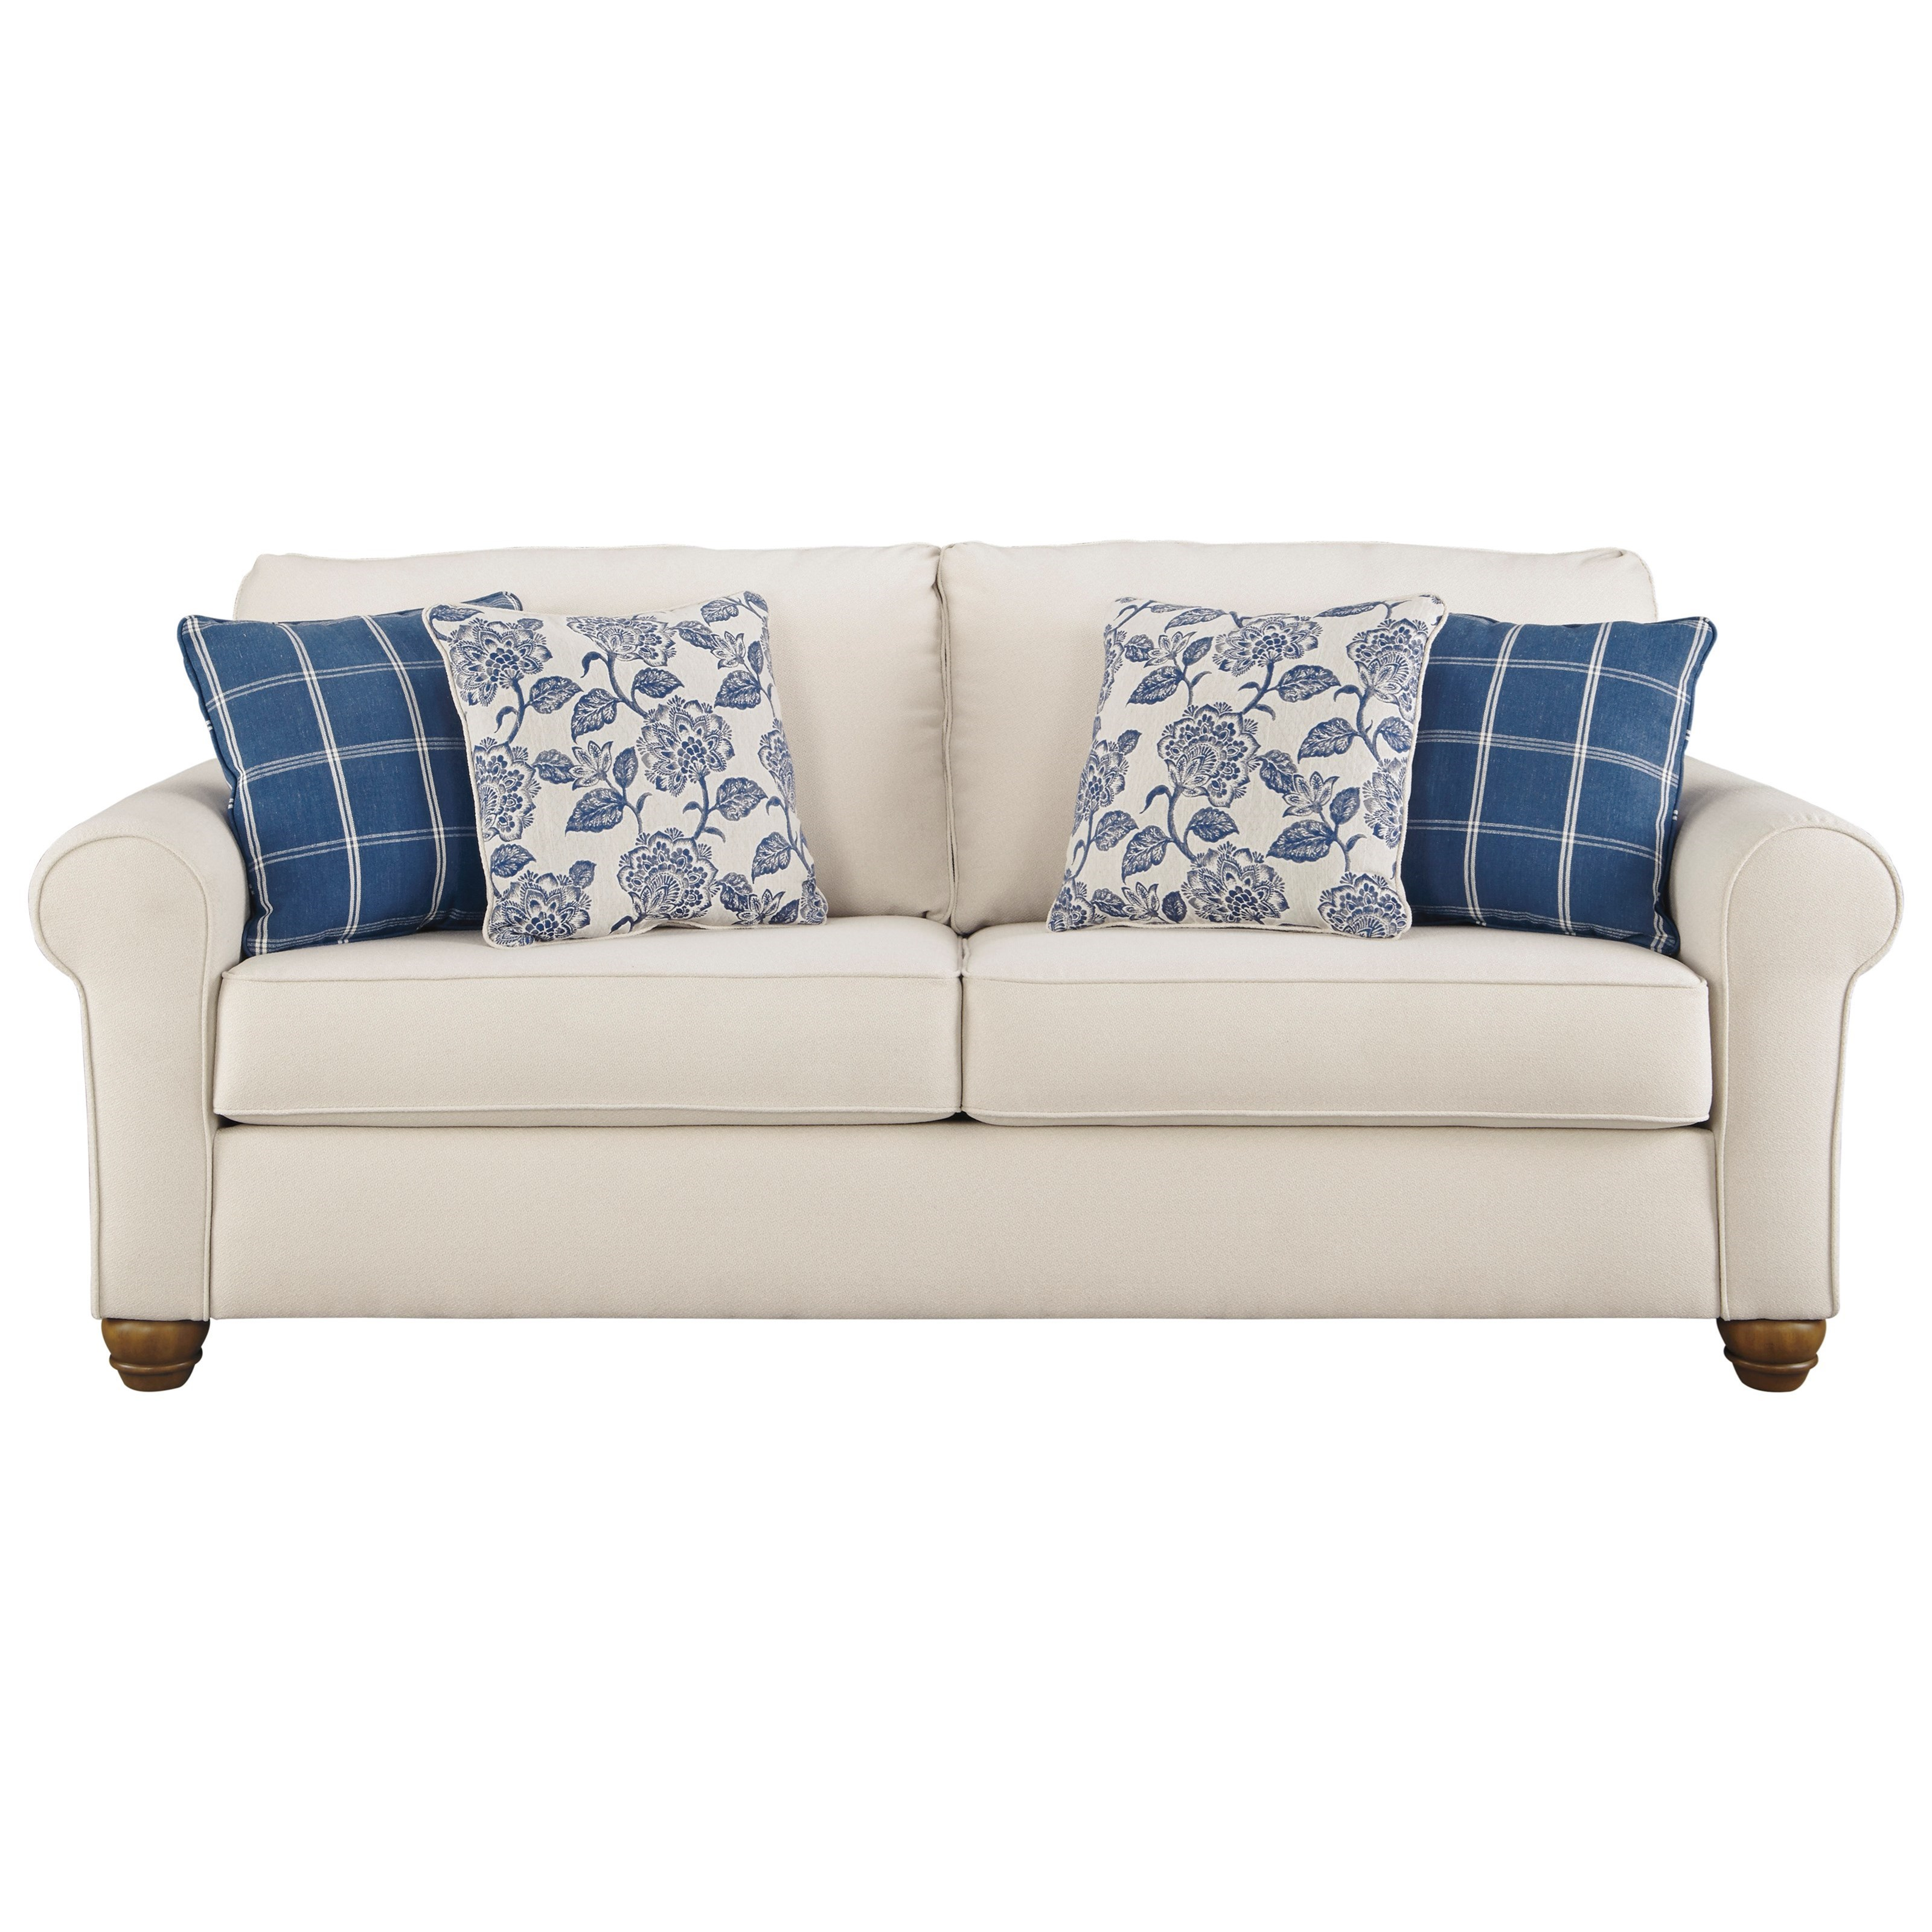 Benchcraft Adderbury Sofa - Item Number: 1440338